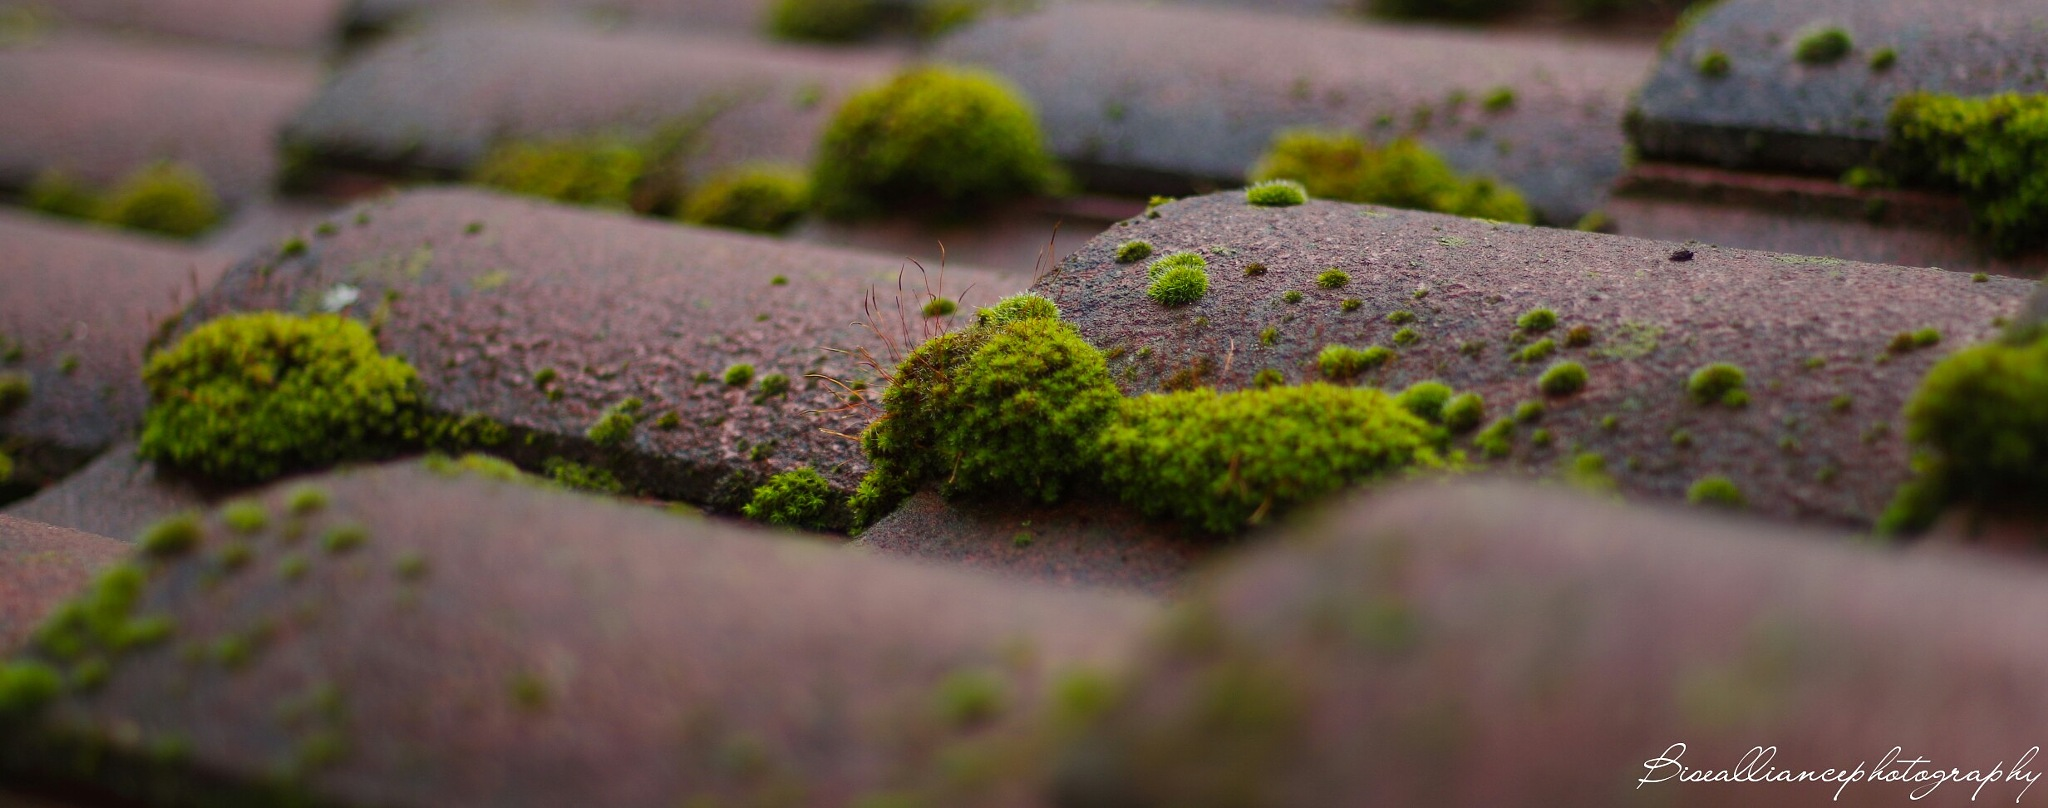 Moss growing on some shingles  by Brayden Bise